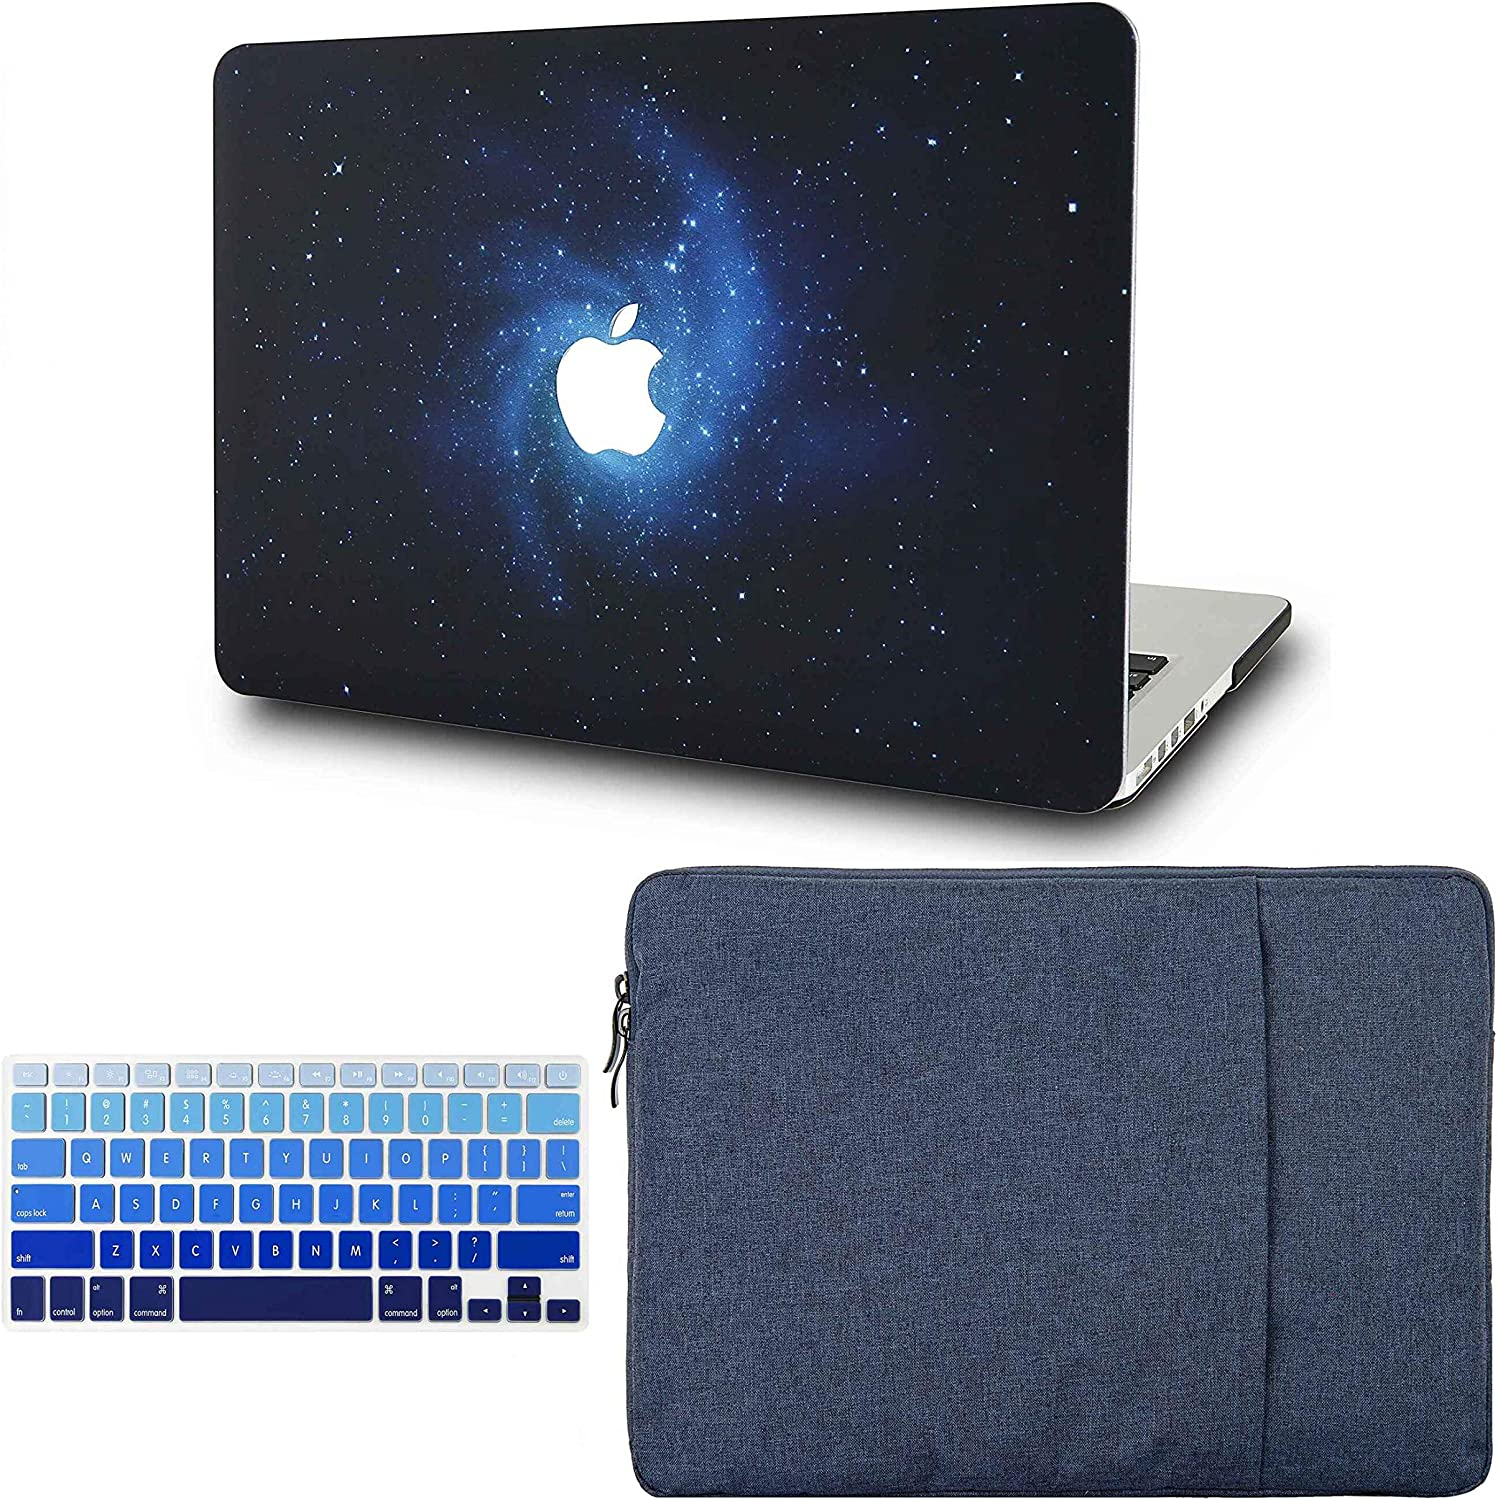 "KECC Laptop Case for MacBook Air 13"" w/Keyboard Cover + Sleeve Plastic Hard Shell Case A1466/A1369 3 in 1 Bundle (Blue)"